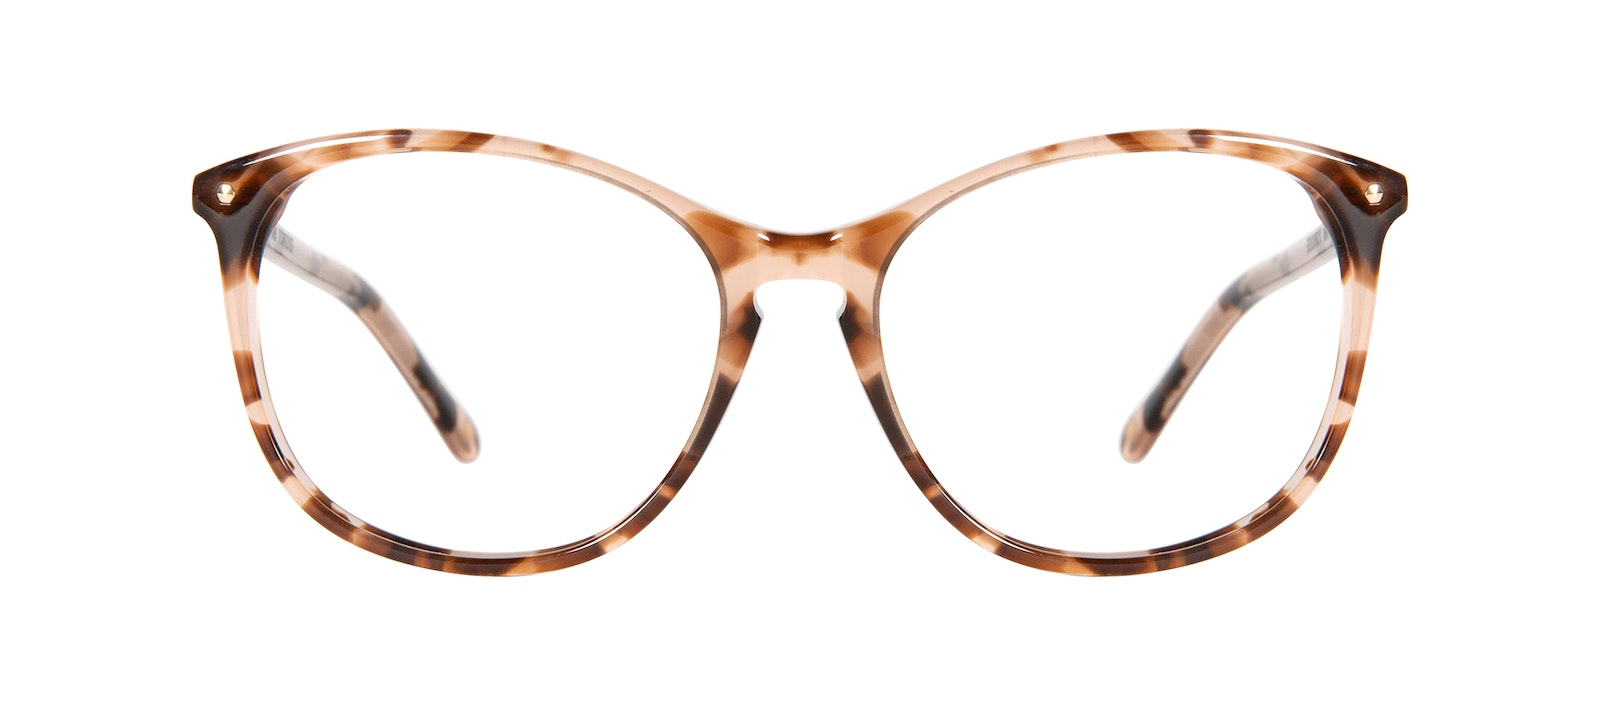 Affordable Fashion Glasses Round Eyeglasses Women Nadine Petite Pink Tortoise Front